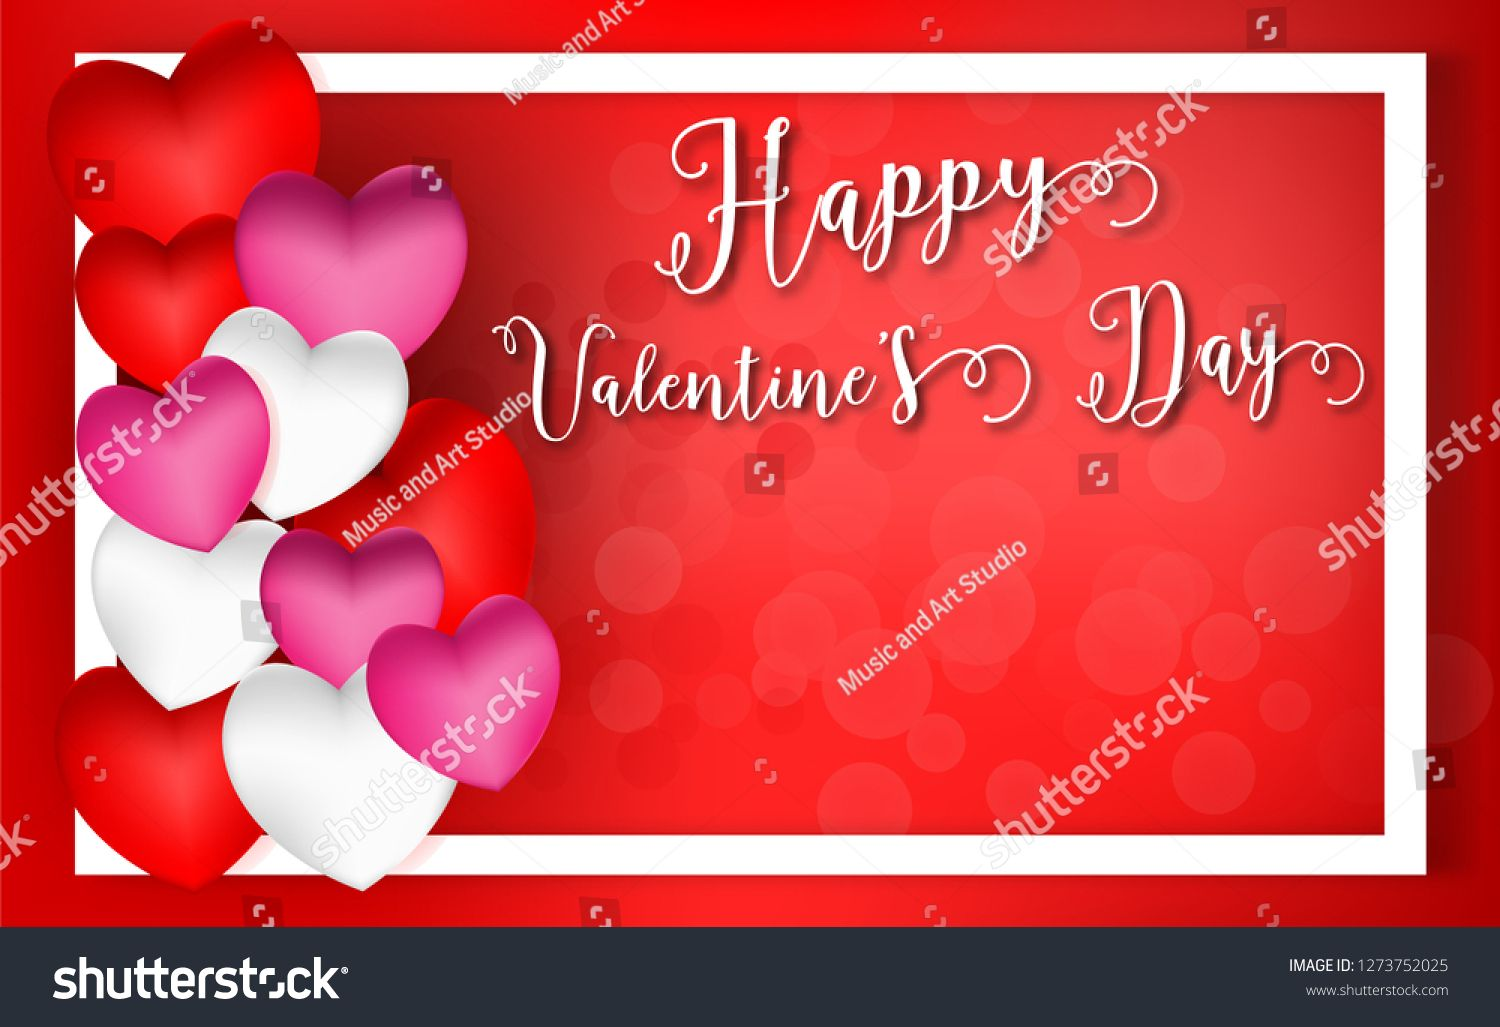 Valentines Day Concept 3d Red Pink White Hearts And Happy Valentine Day Text Background Clip Art Design For G Happy Valentines Day Valentines Happy Valentine